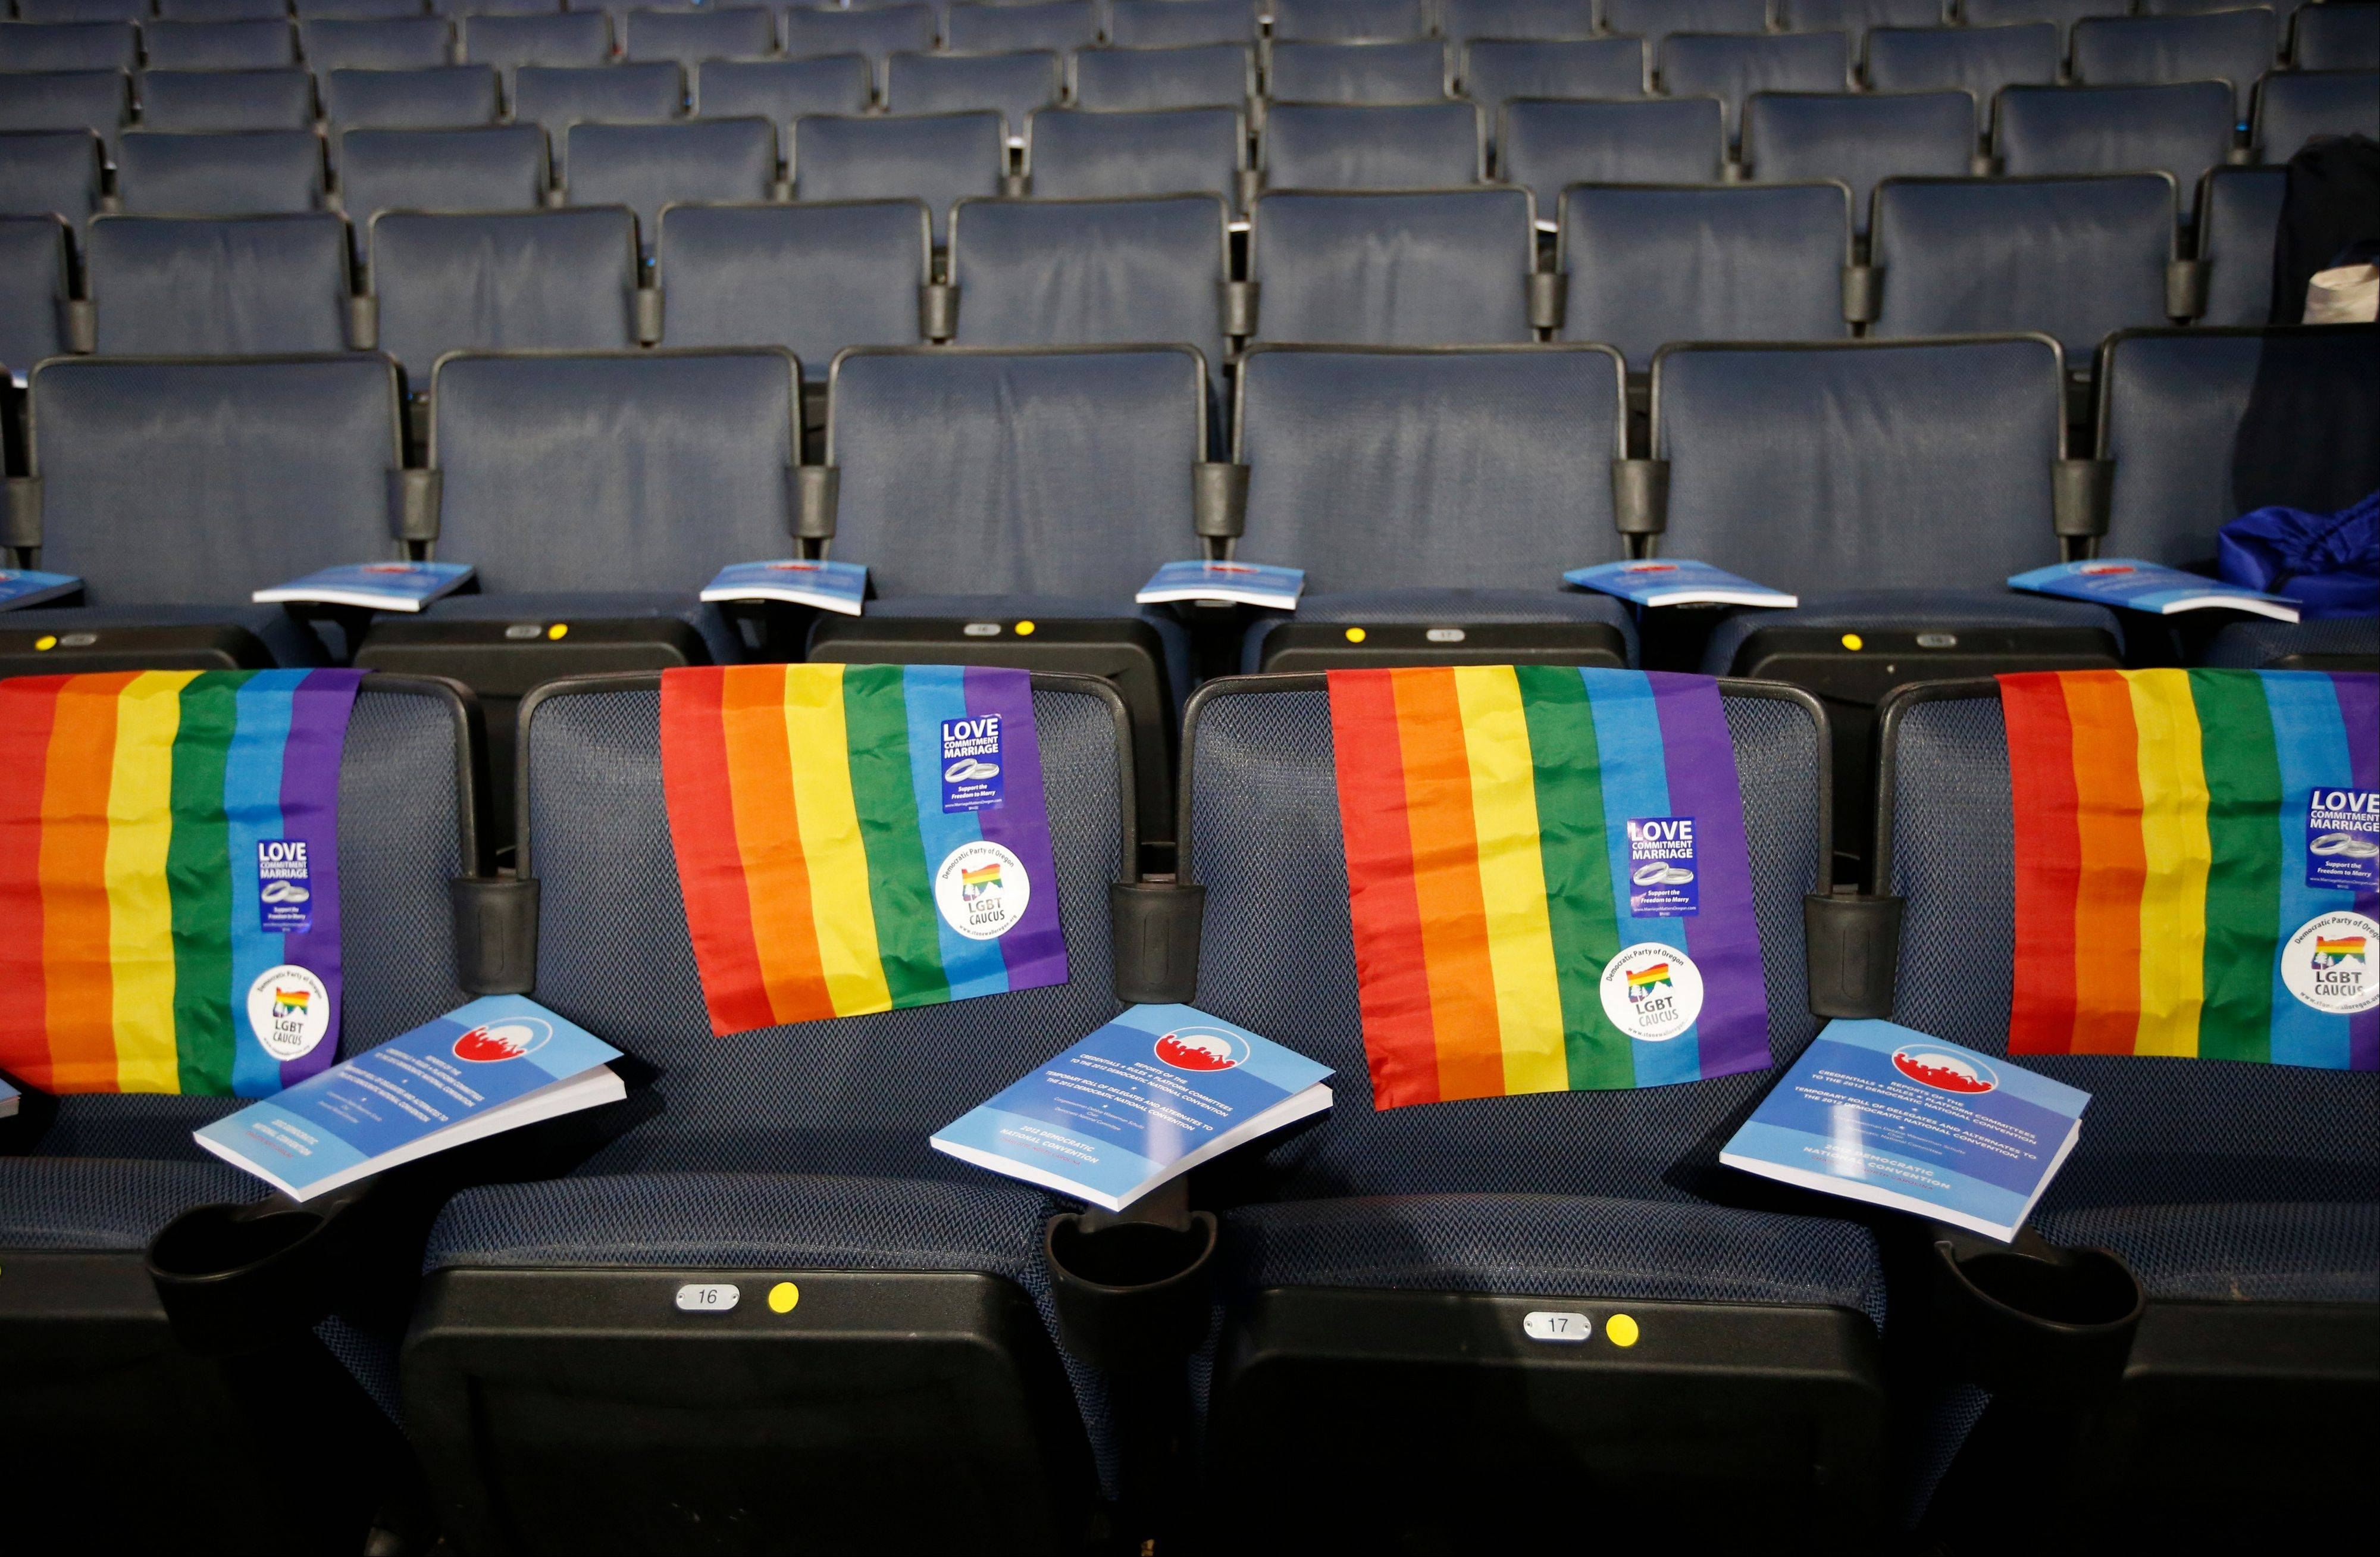 Rainbow flags are placed on a row of seats at the Democratic National Convention in Charlotte, N.C., Tuesday.